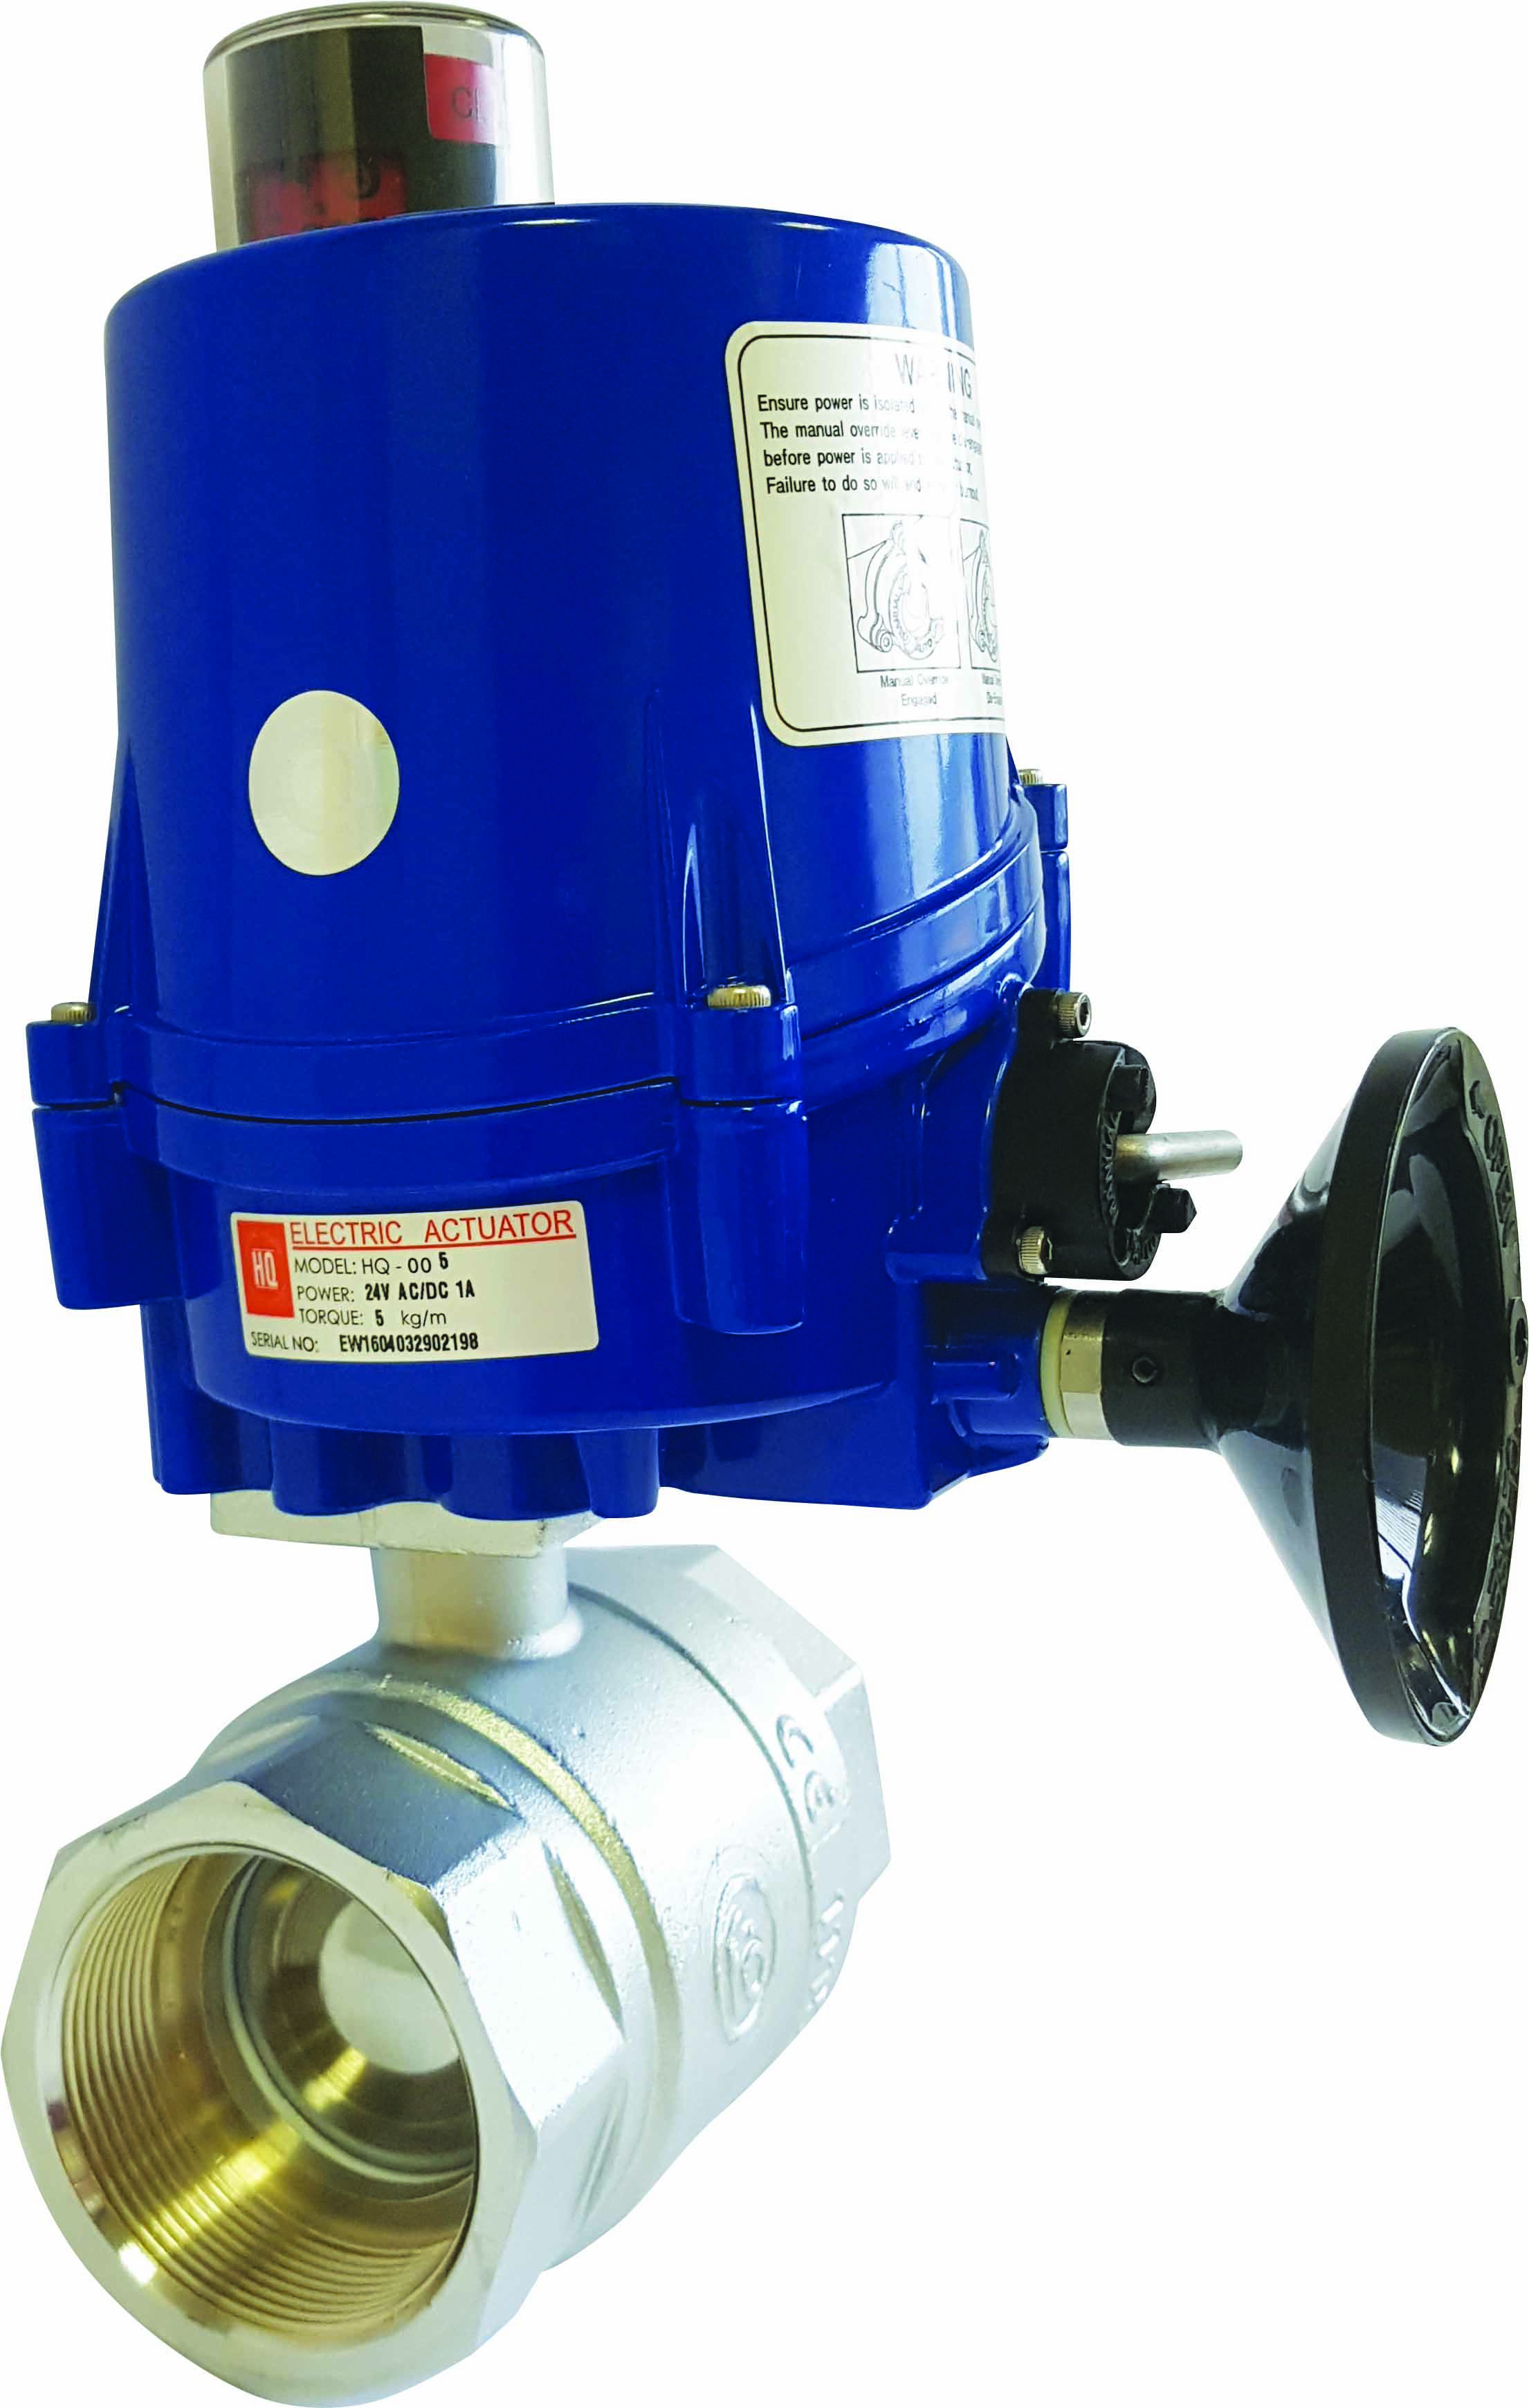 Actuated Valves Alma Valves